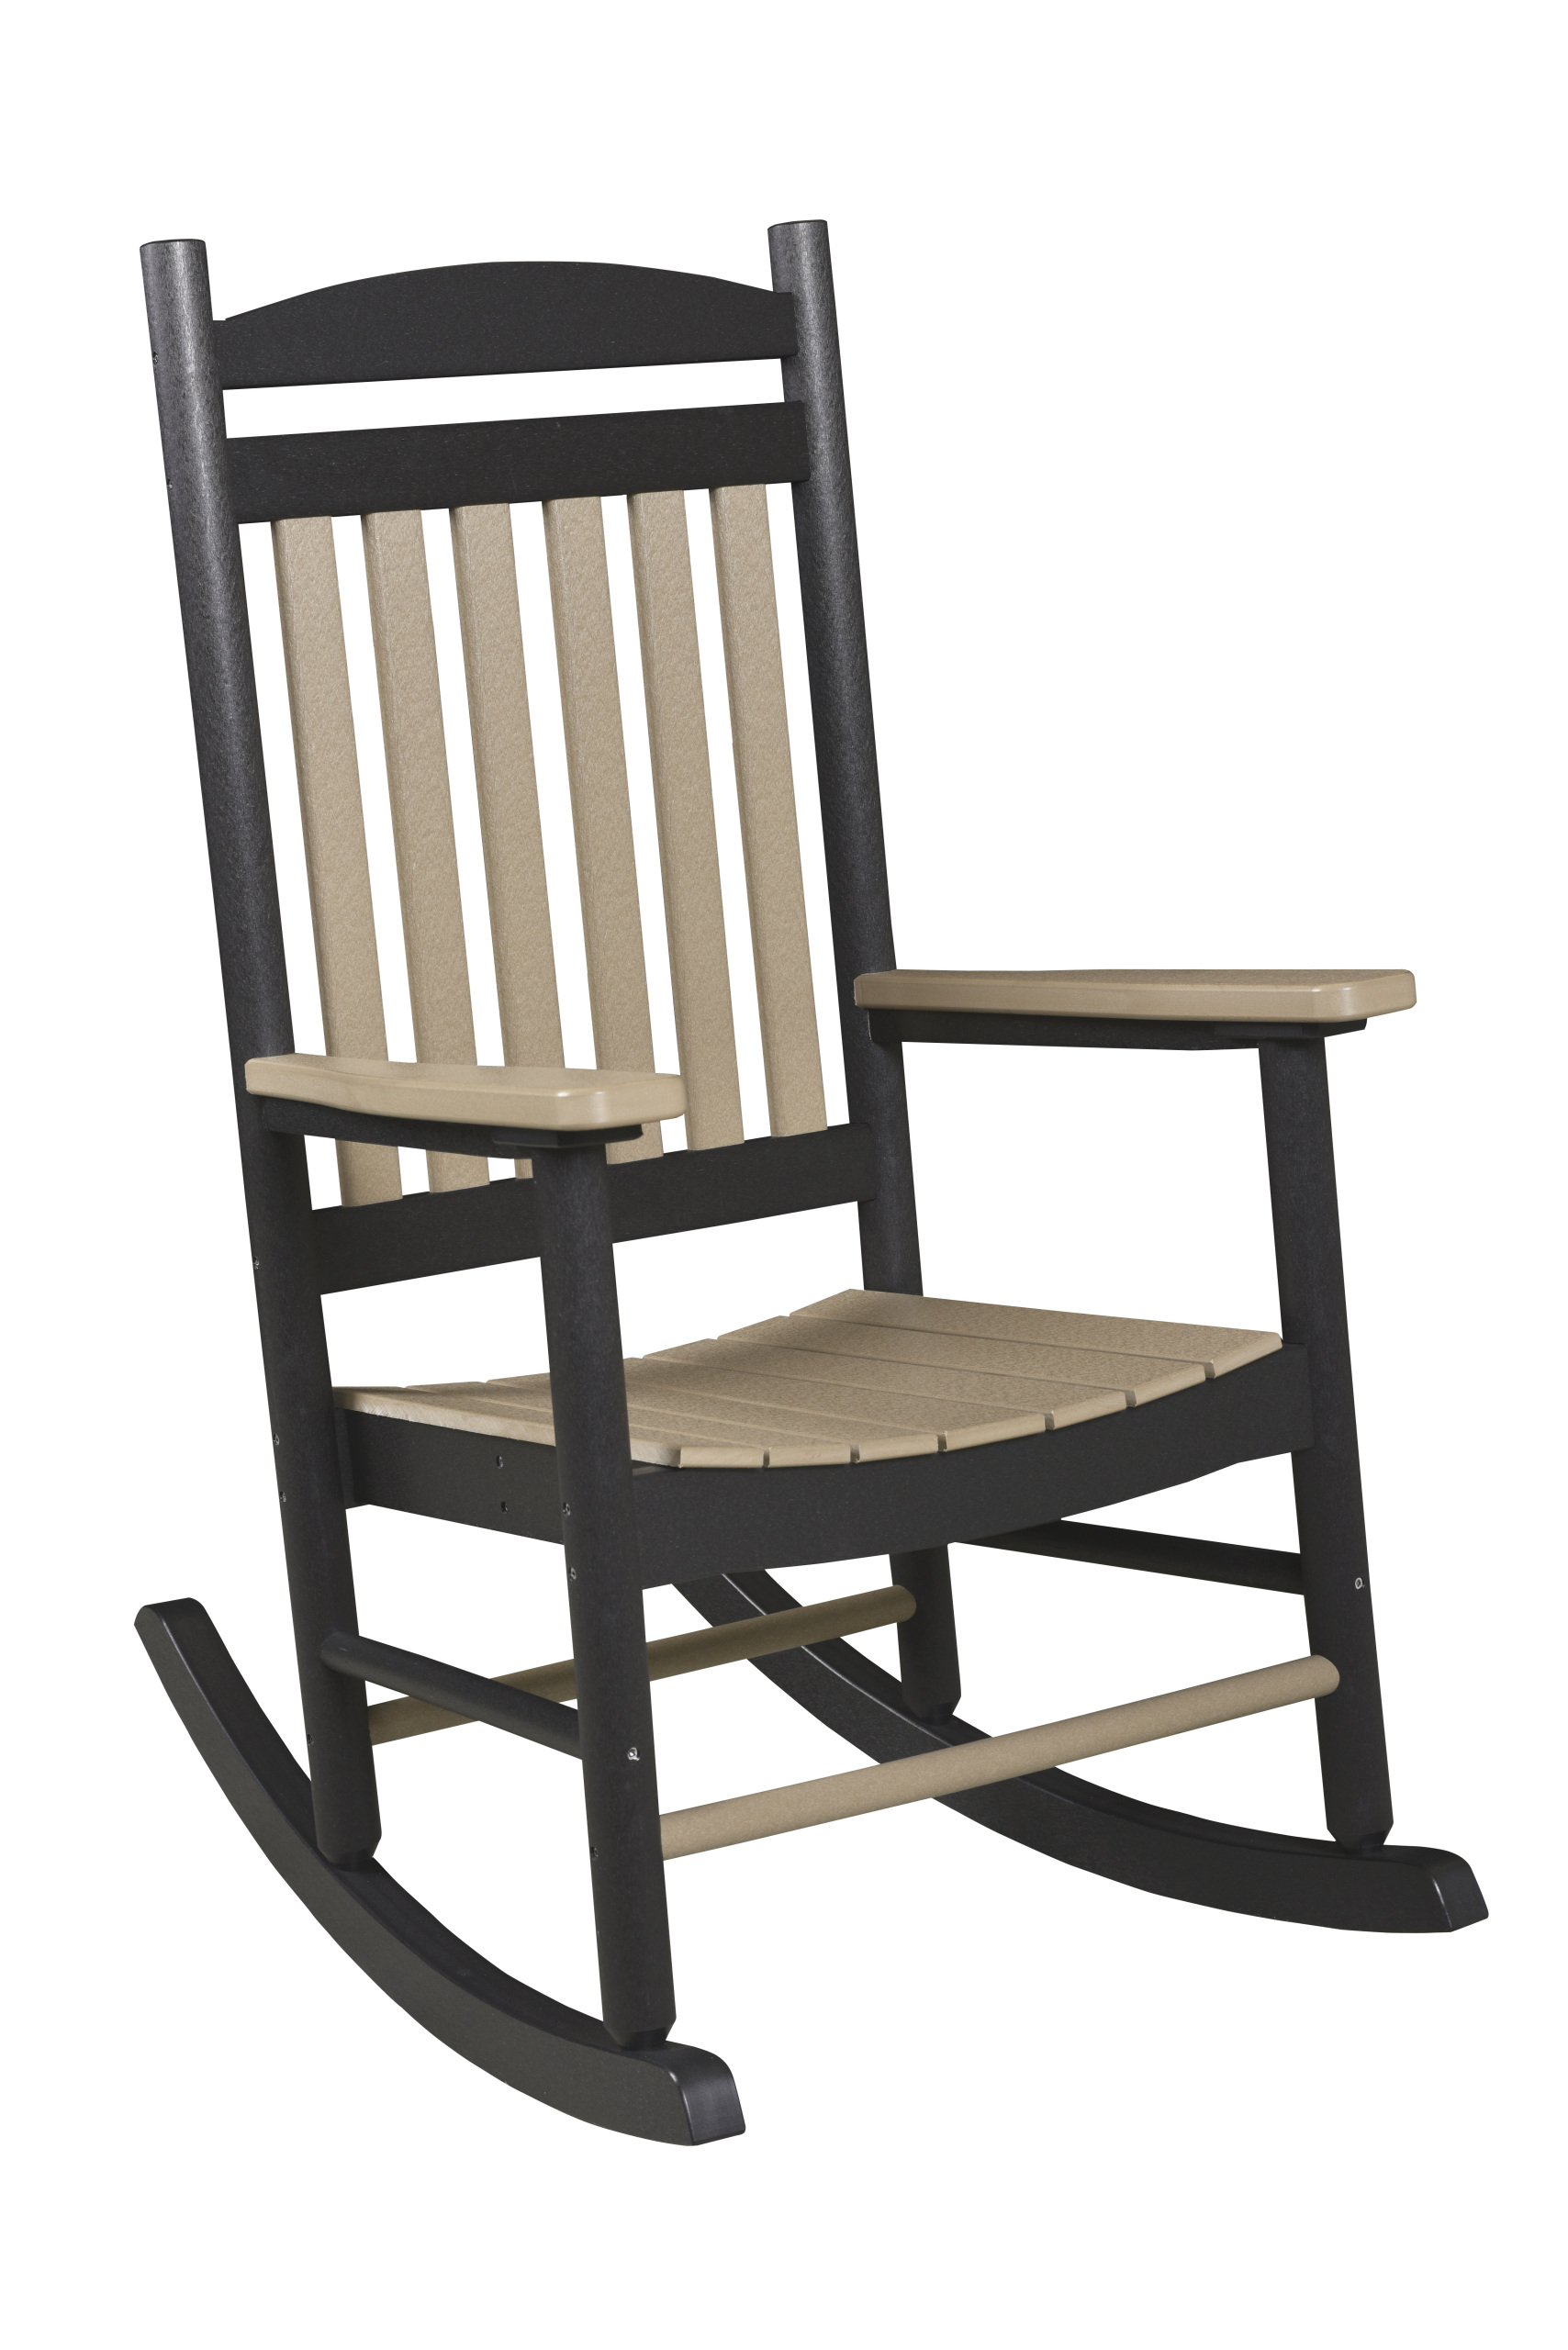 Rocking chair tradional porch rocker for Rocking chairs for porch